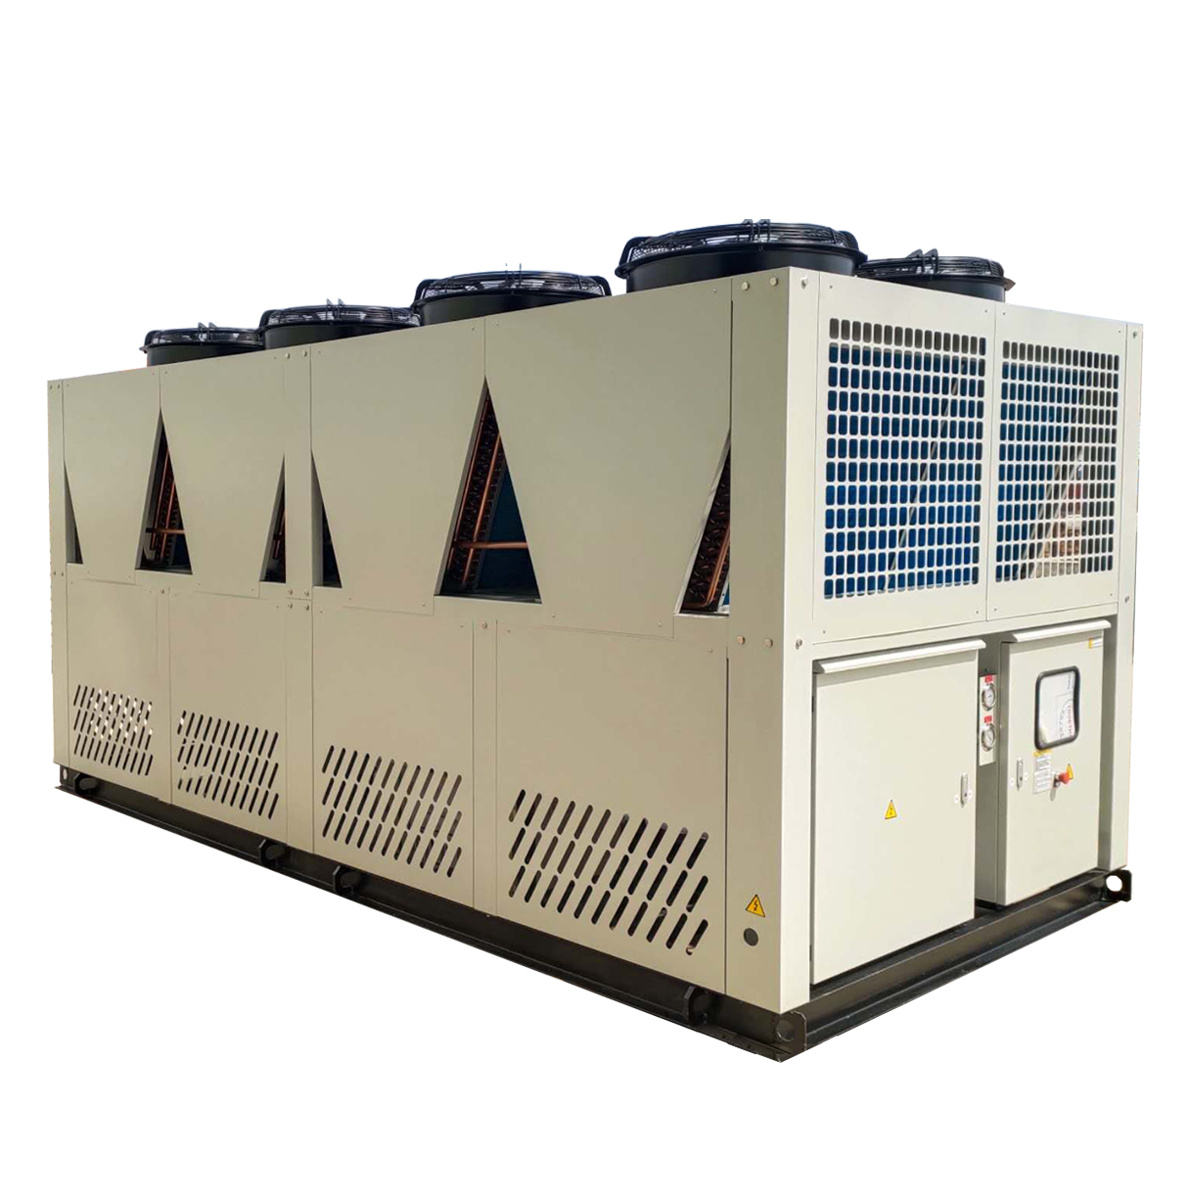 Max 100KW To 450kw Cooling Capacity Air Cooled Scroll Chiller for Industrial Air Conditioner